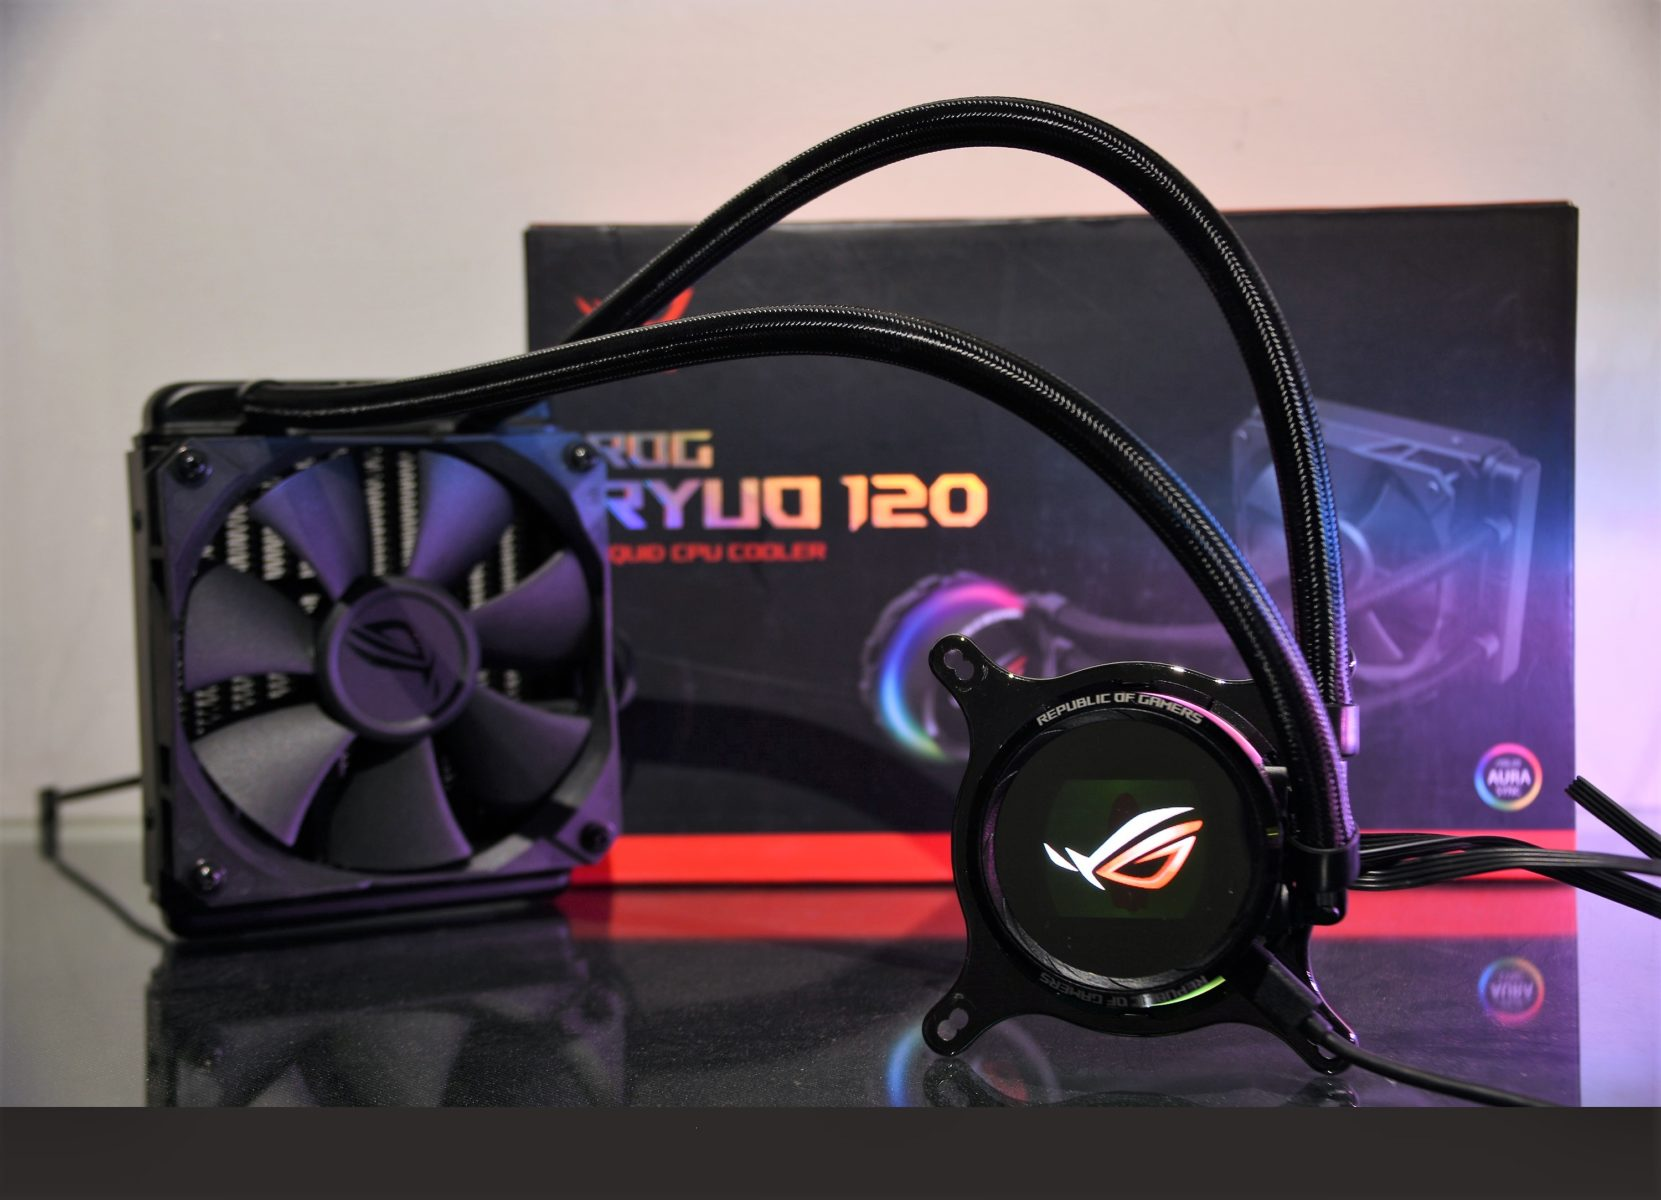 Review ASUS ROG RYUO 120 – Specs | Testing | Overclocking